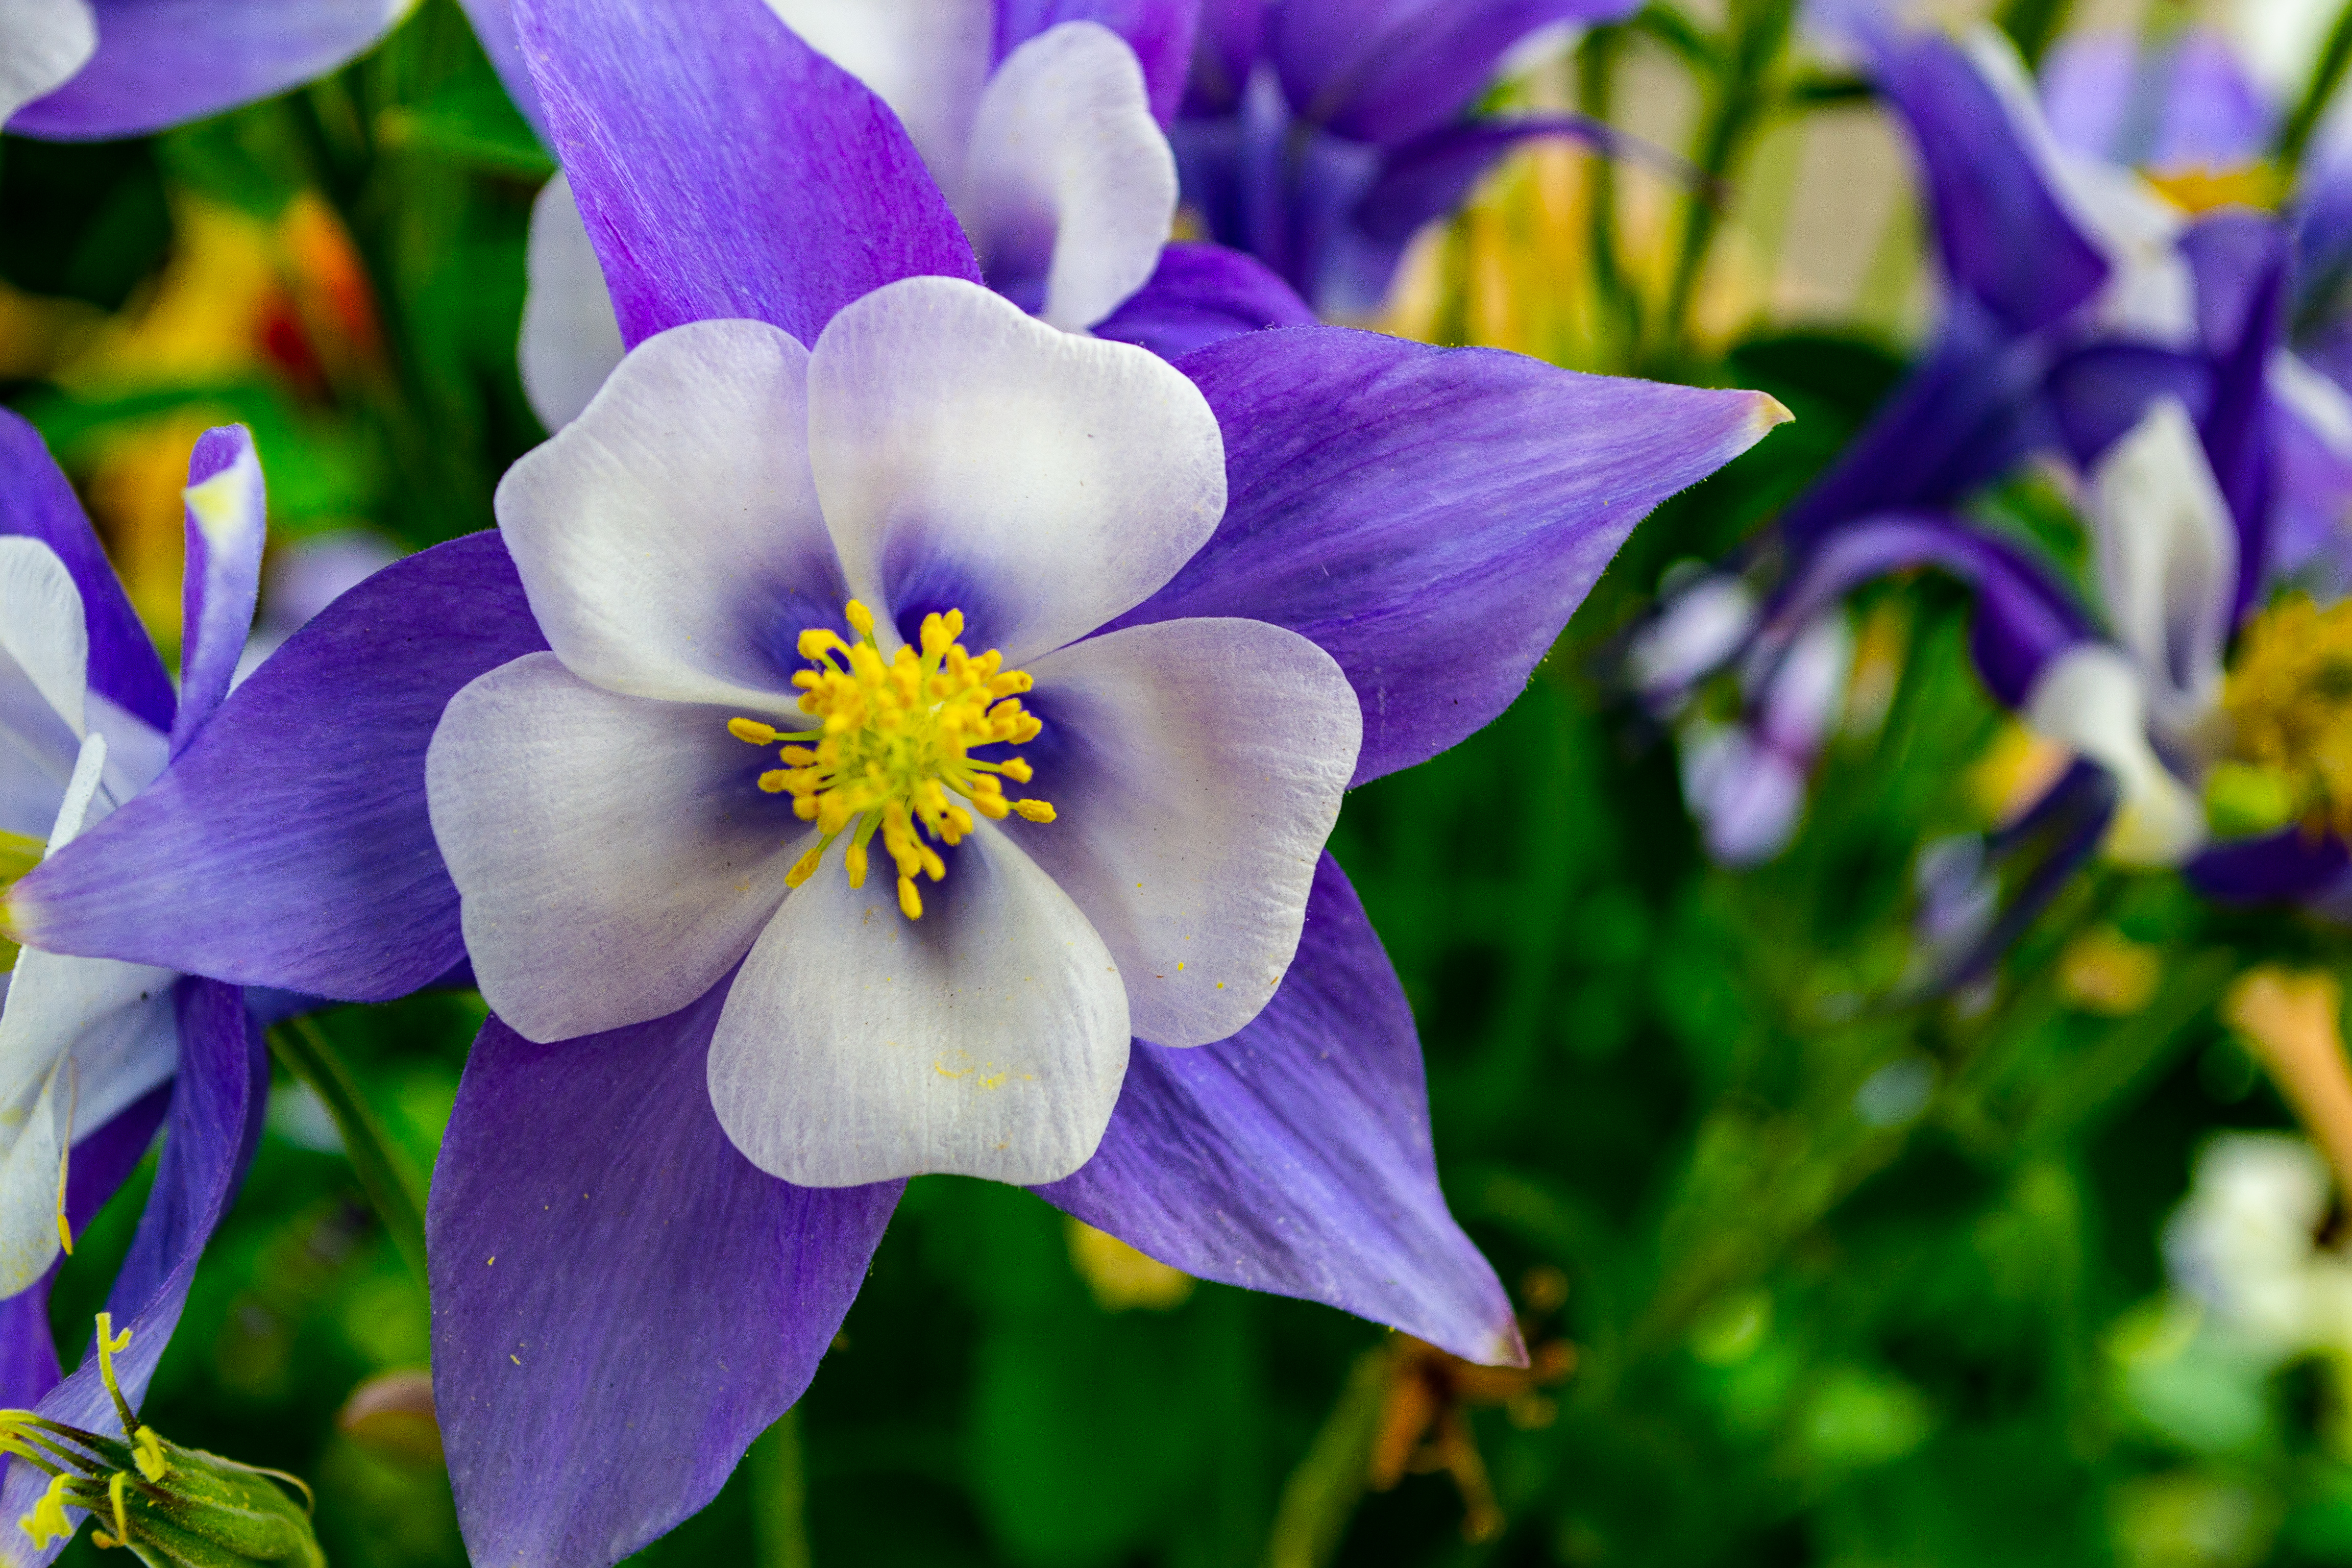 Shallow Focus Photography of White and Purple Flowers